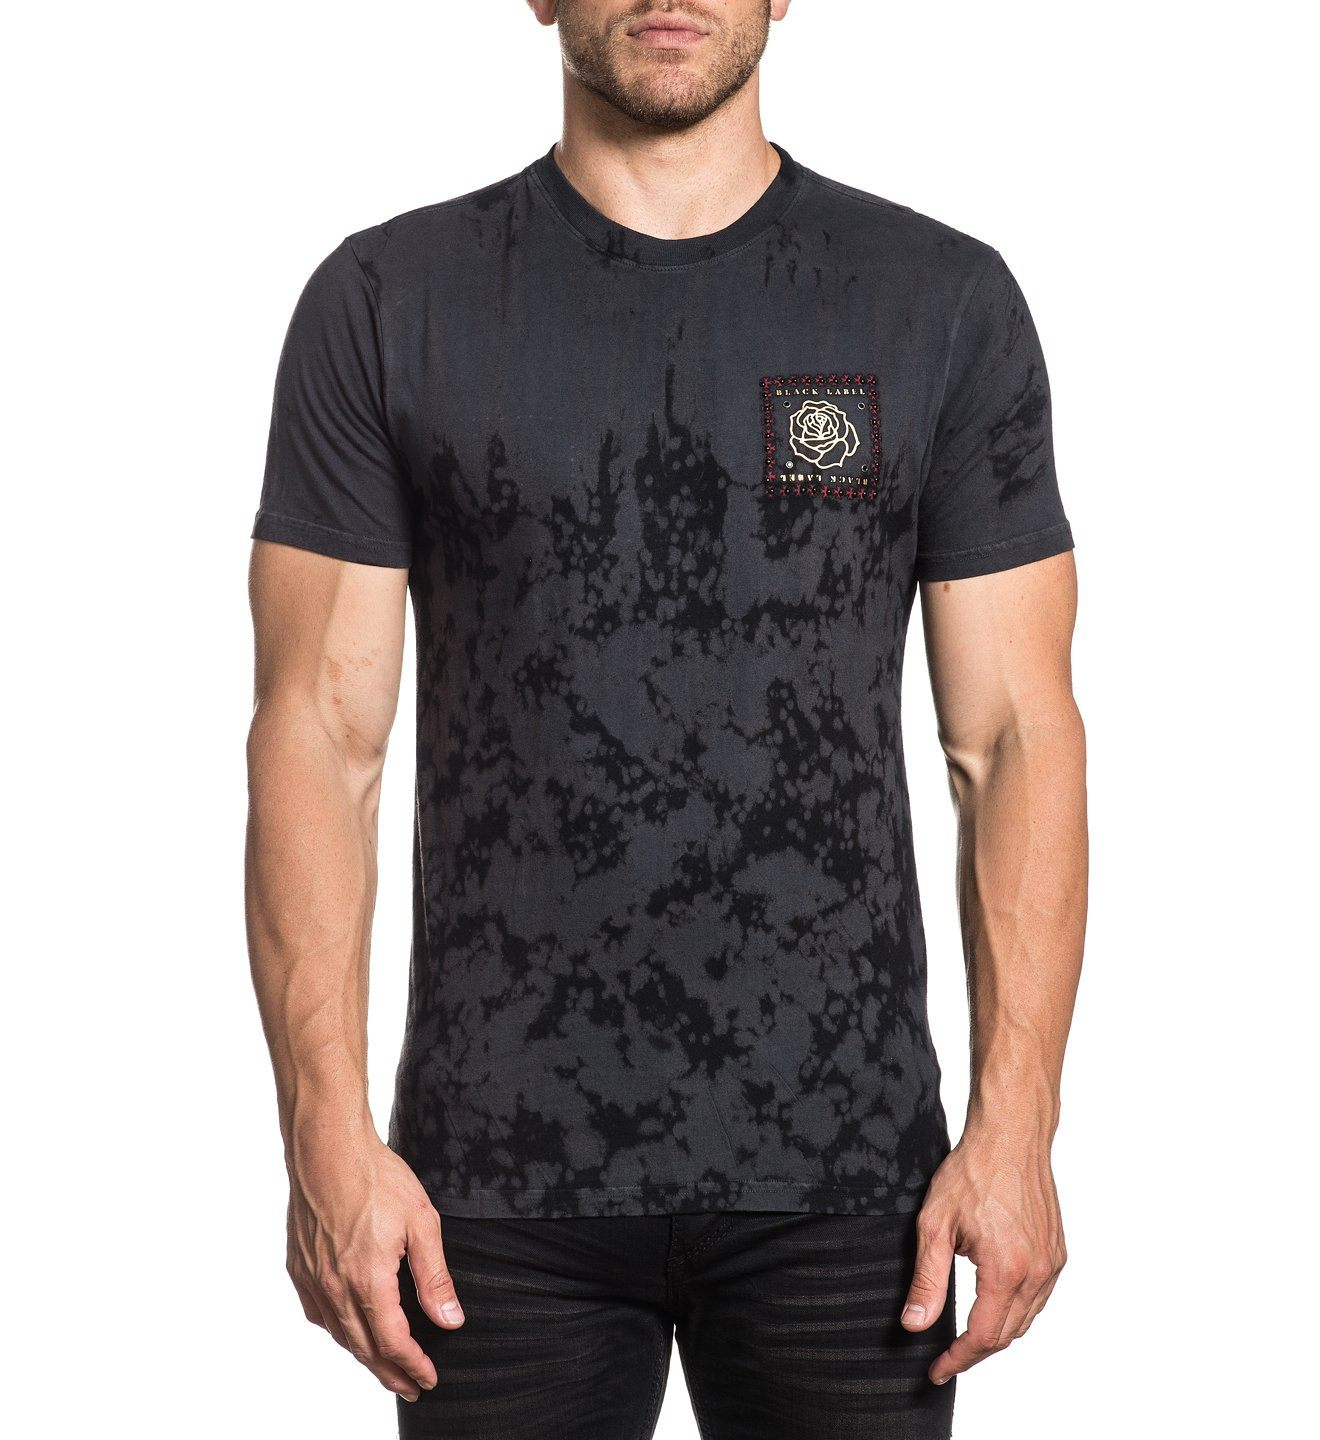 Forever Cross - Mens Short Sleeve Tees - Affliction Clothing